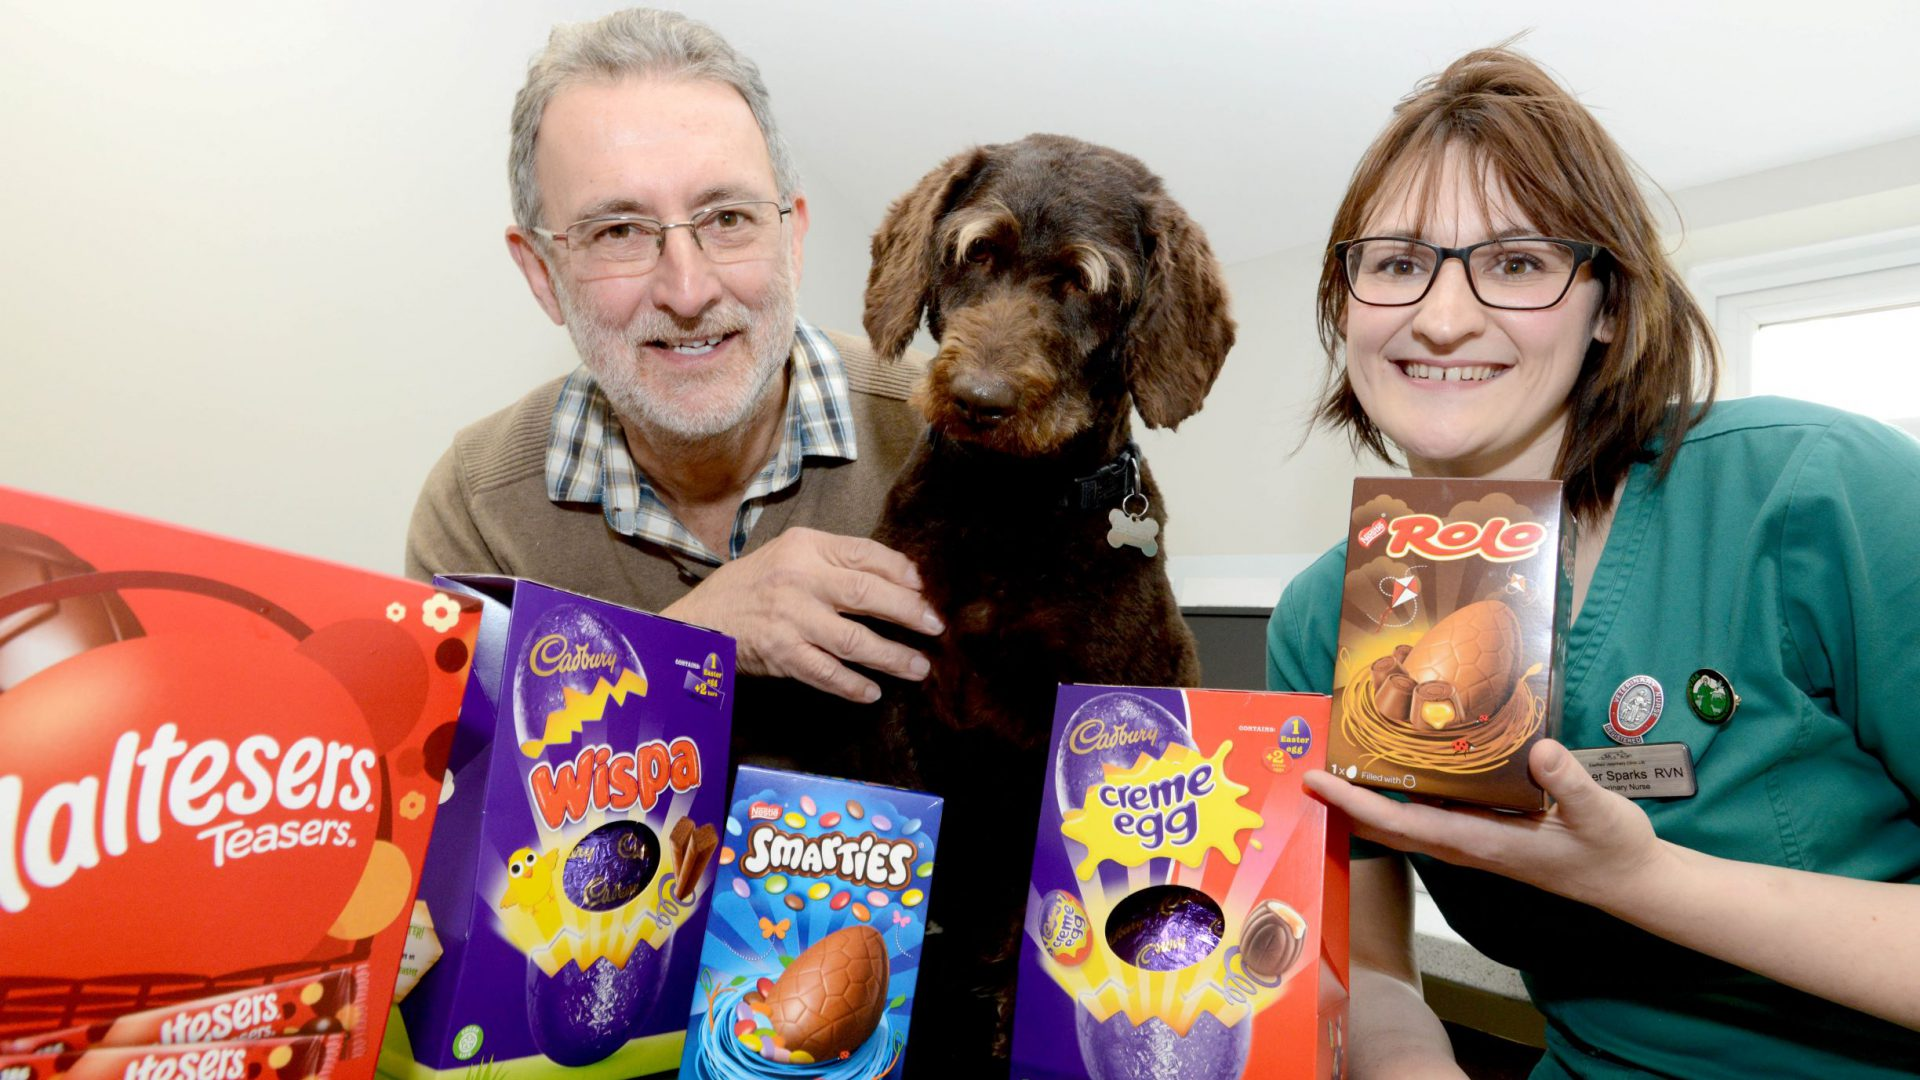 Chocs away! Vets warning to dog owners after Boseley guzzles Easter treats